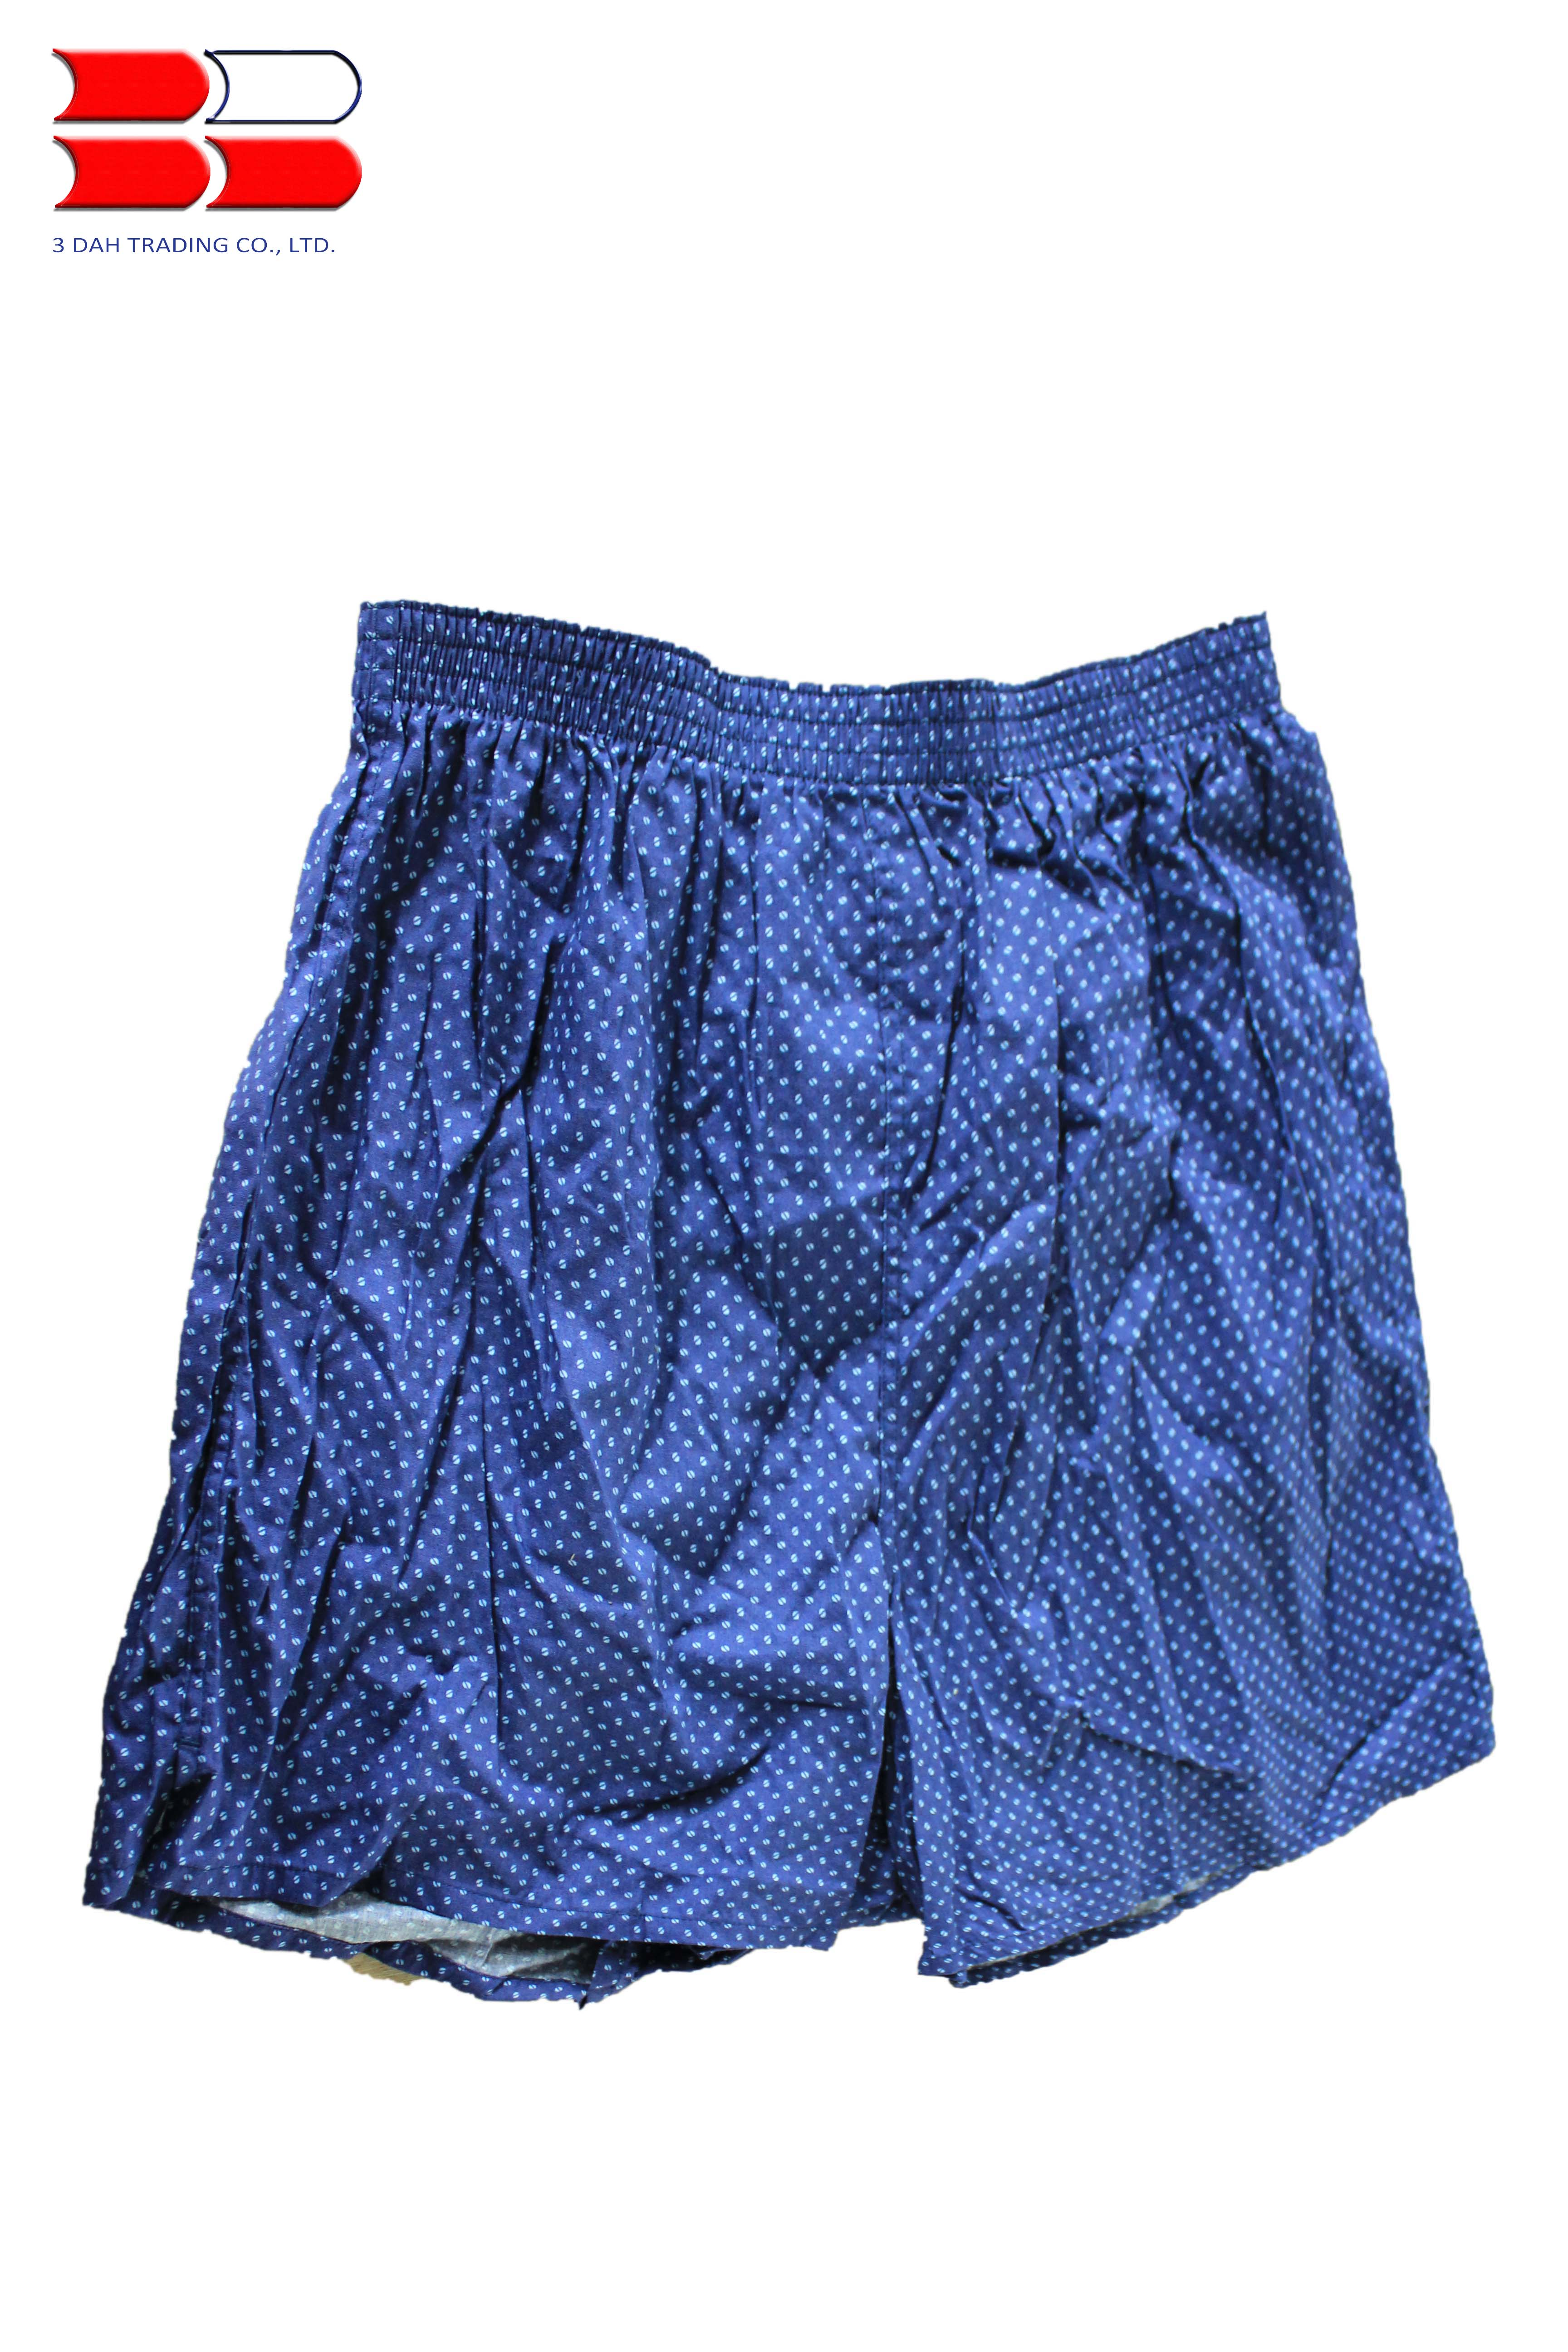 Men's Used Boxer Pants